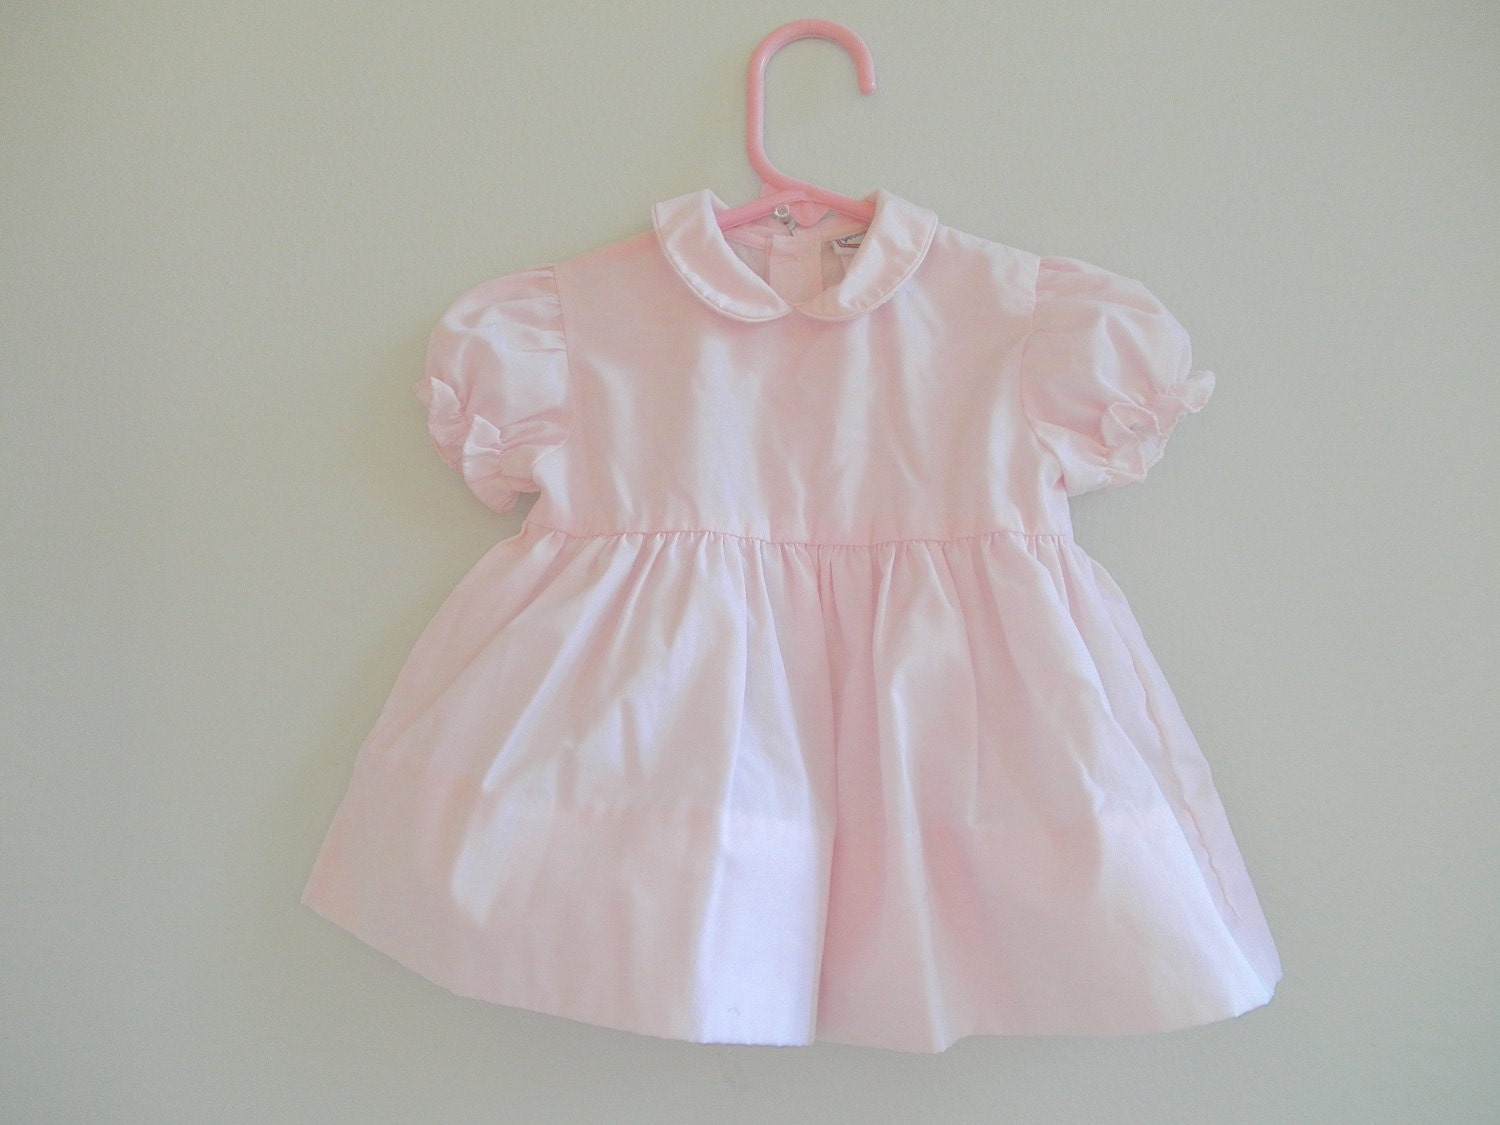 Baby Girls Dress Size 3 to 6 Month Vintage Baby Clothing